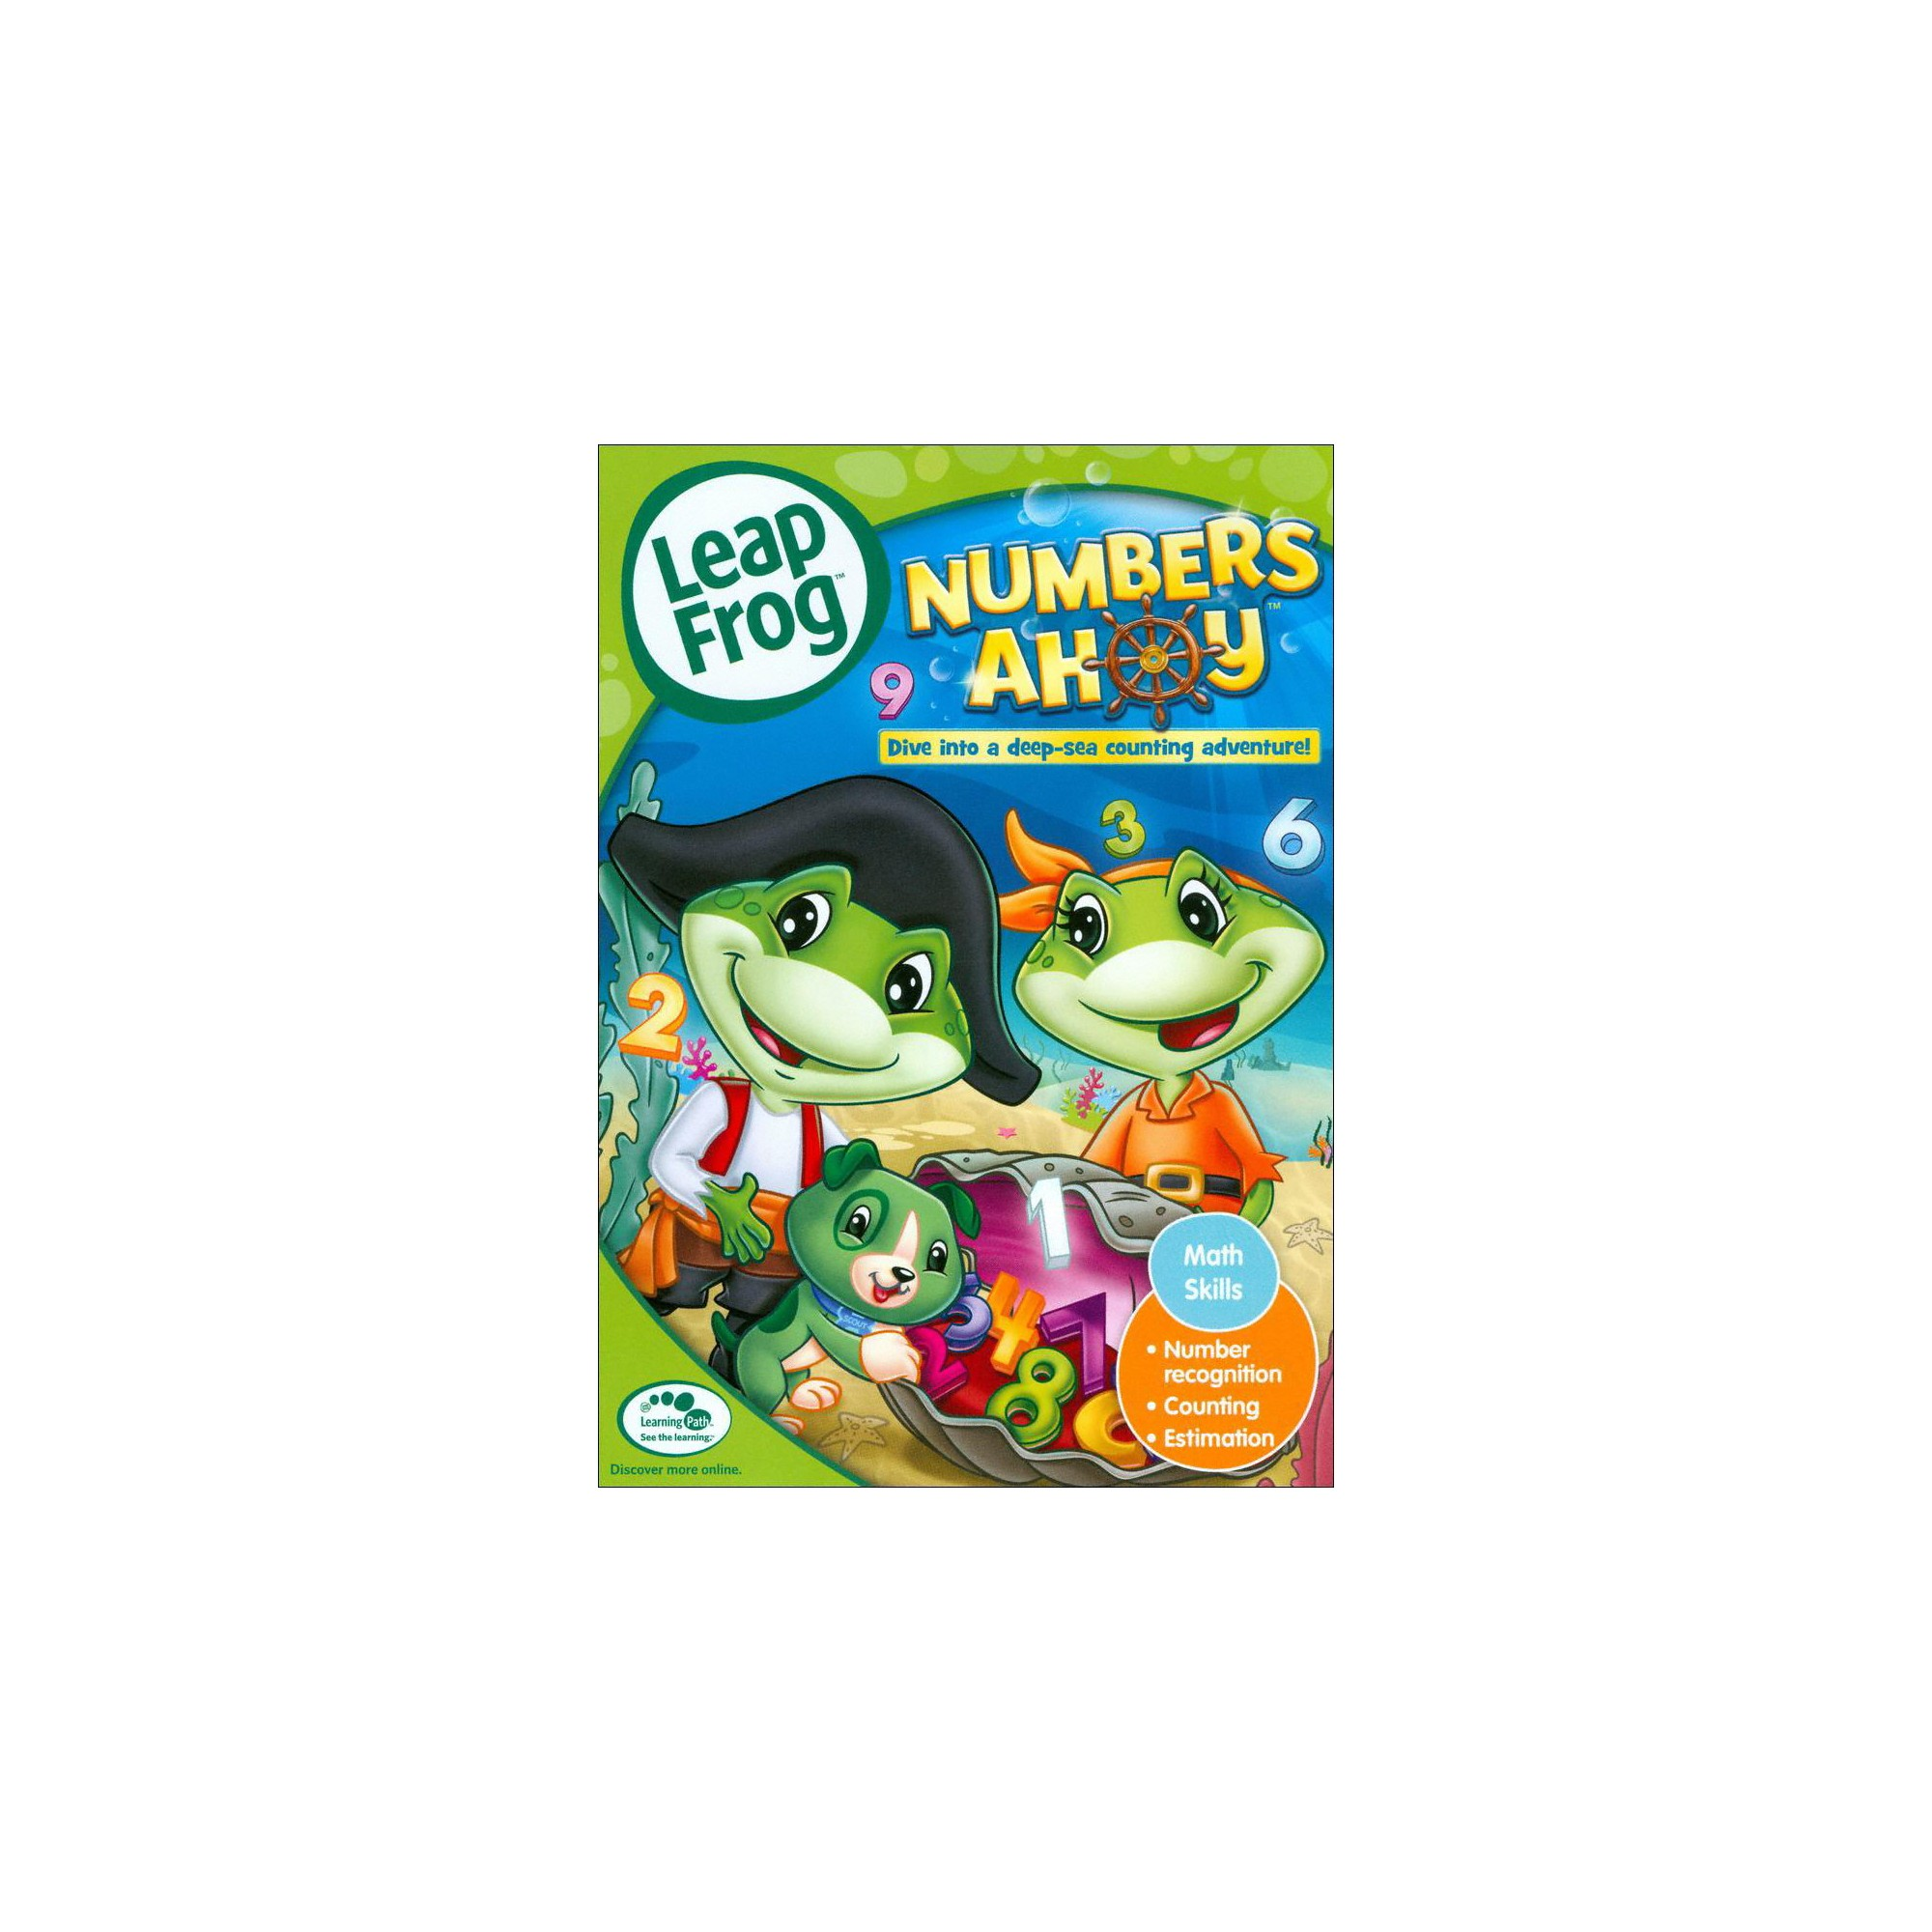 LeapfrogNumbers ahoy (Dvd)